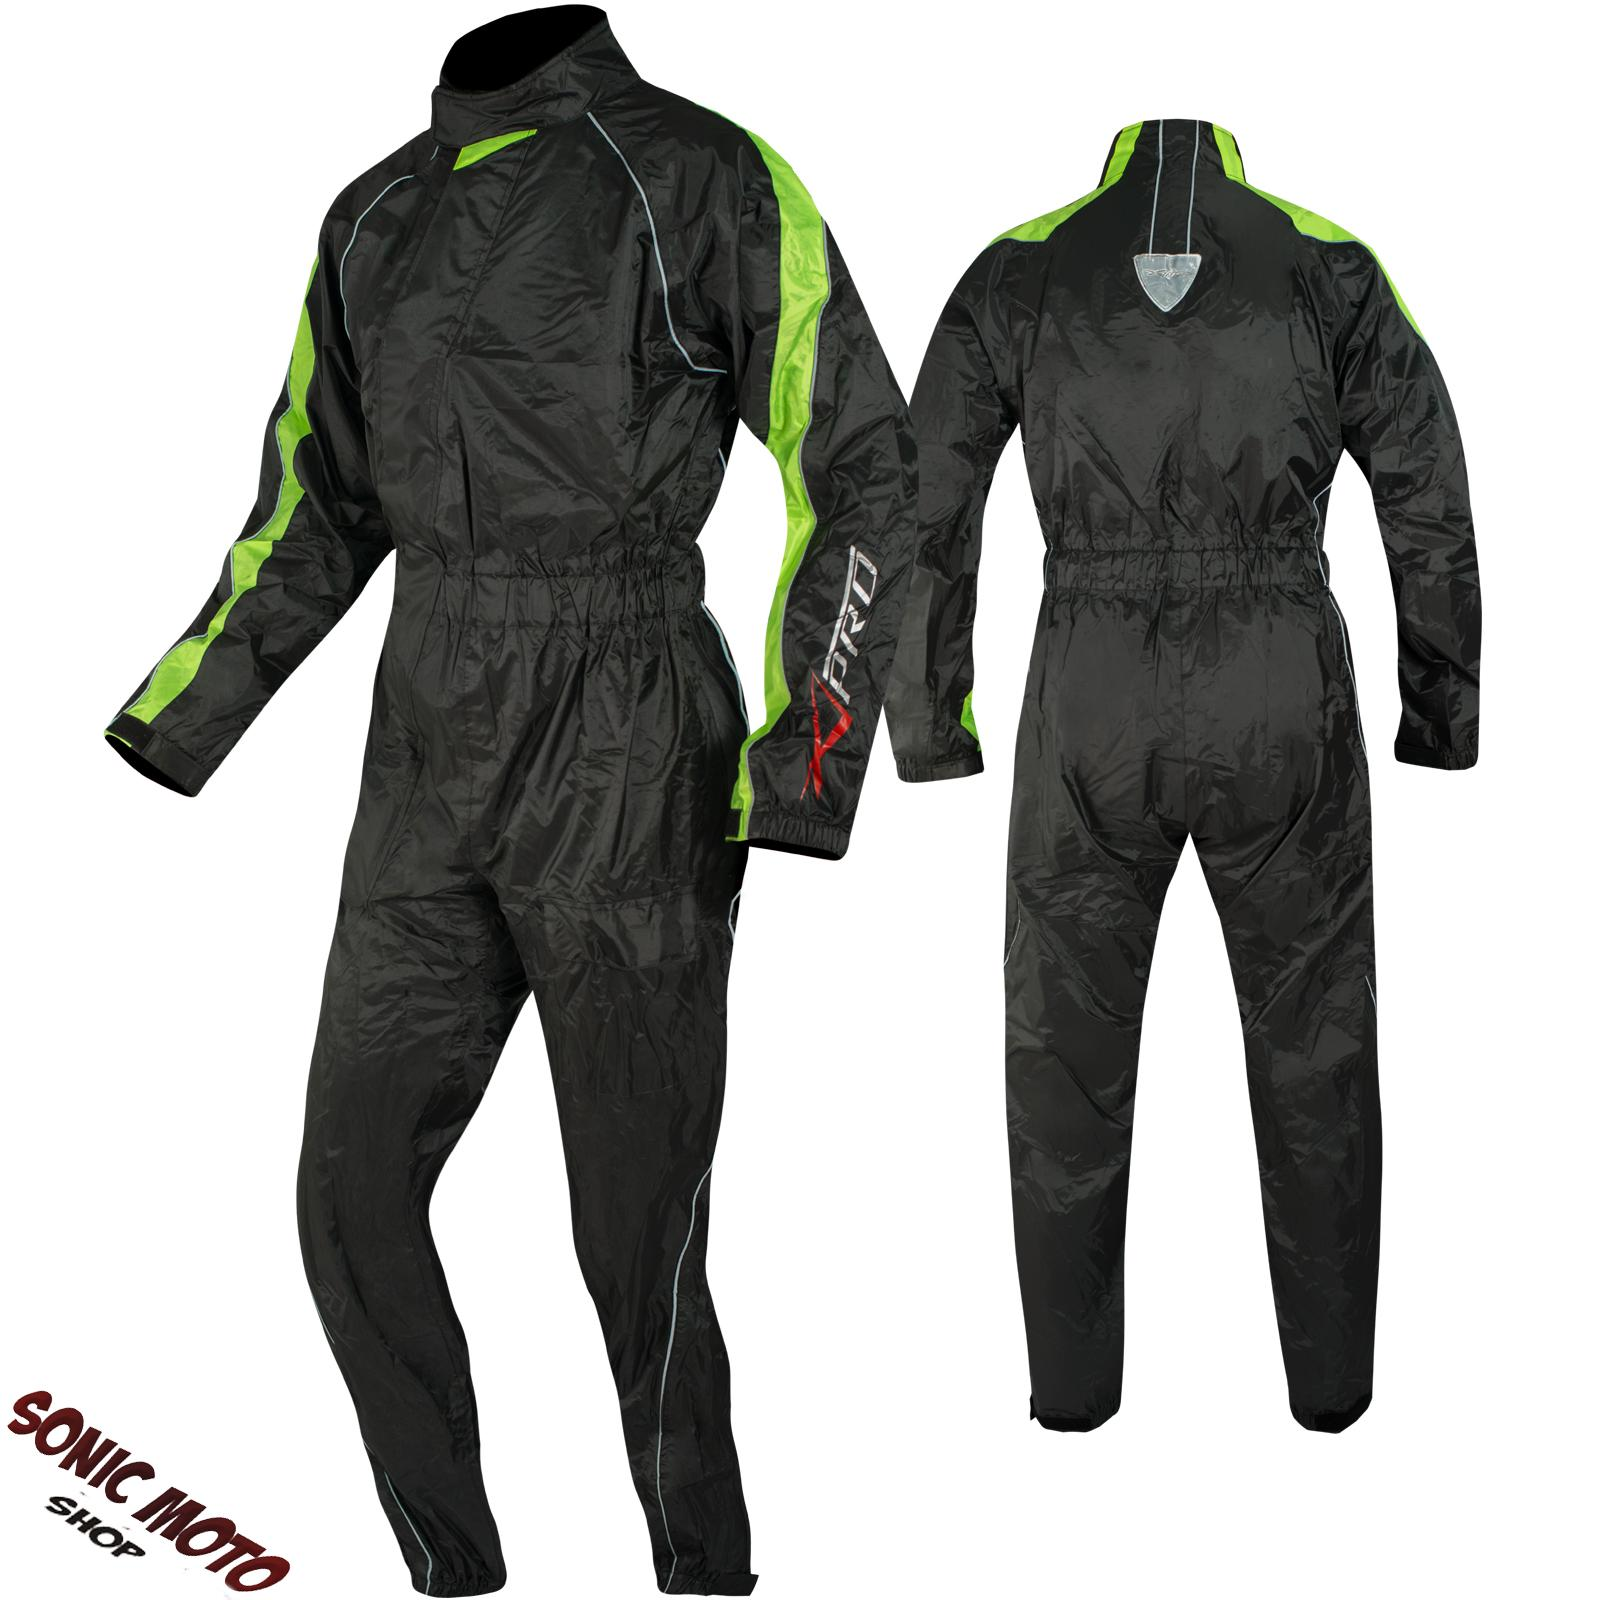 Body gear clothing store